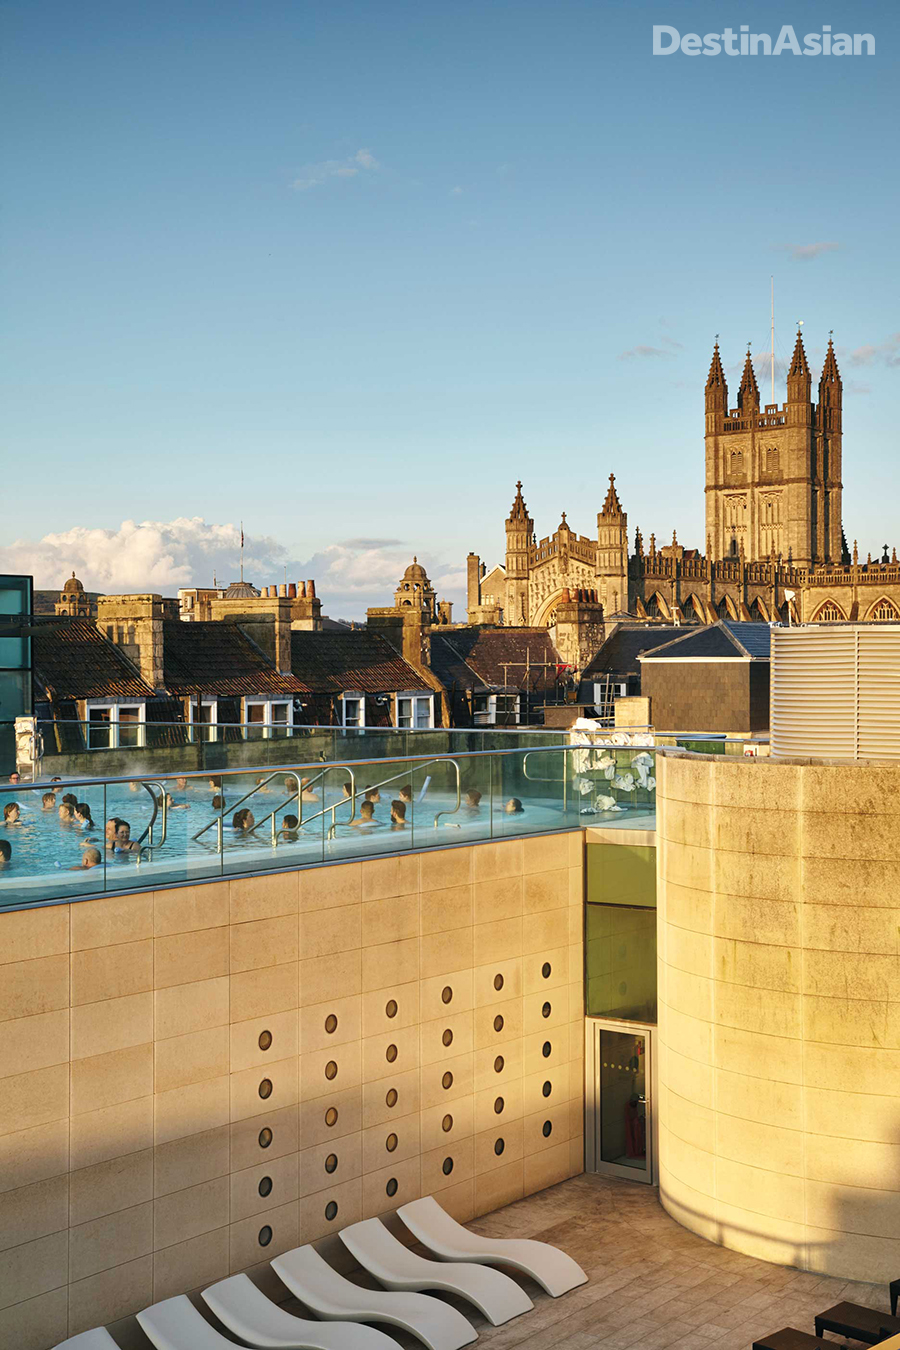 The rooftop pool at Thermae Bath Spa comes with lofty views of Bath Abbey.